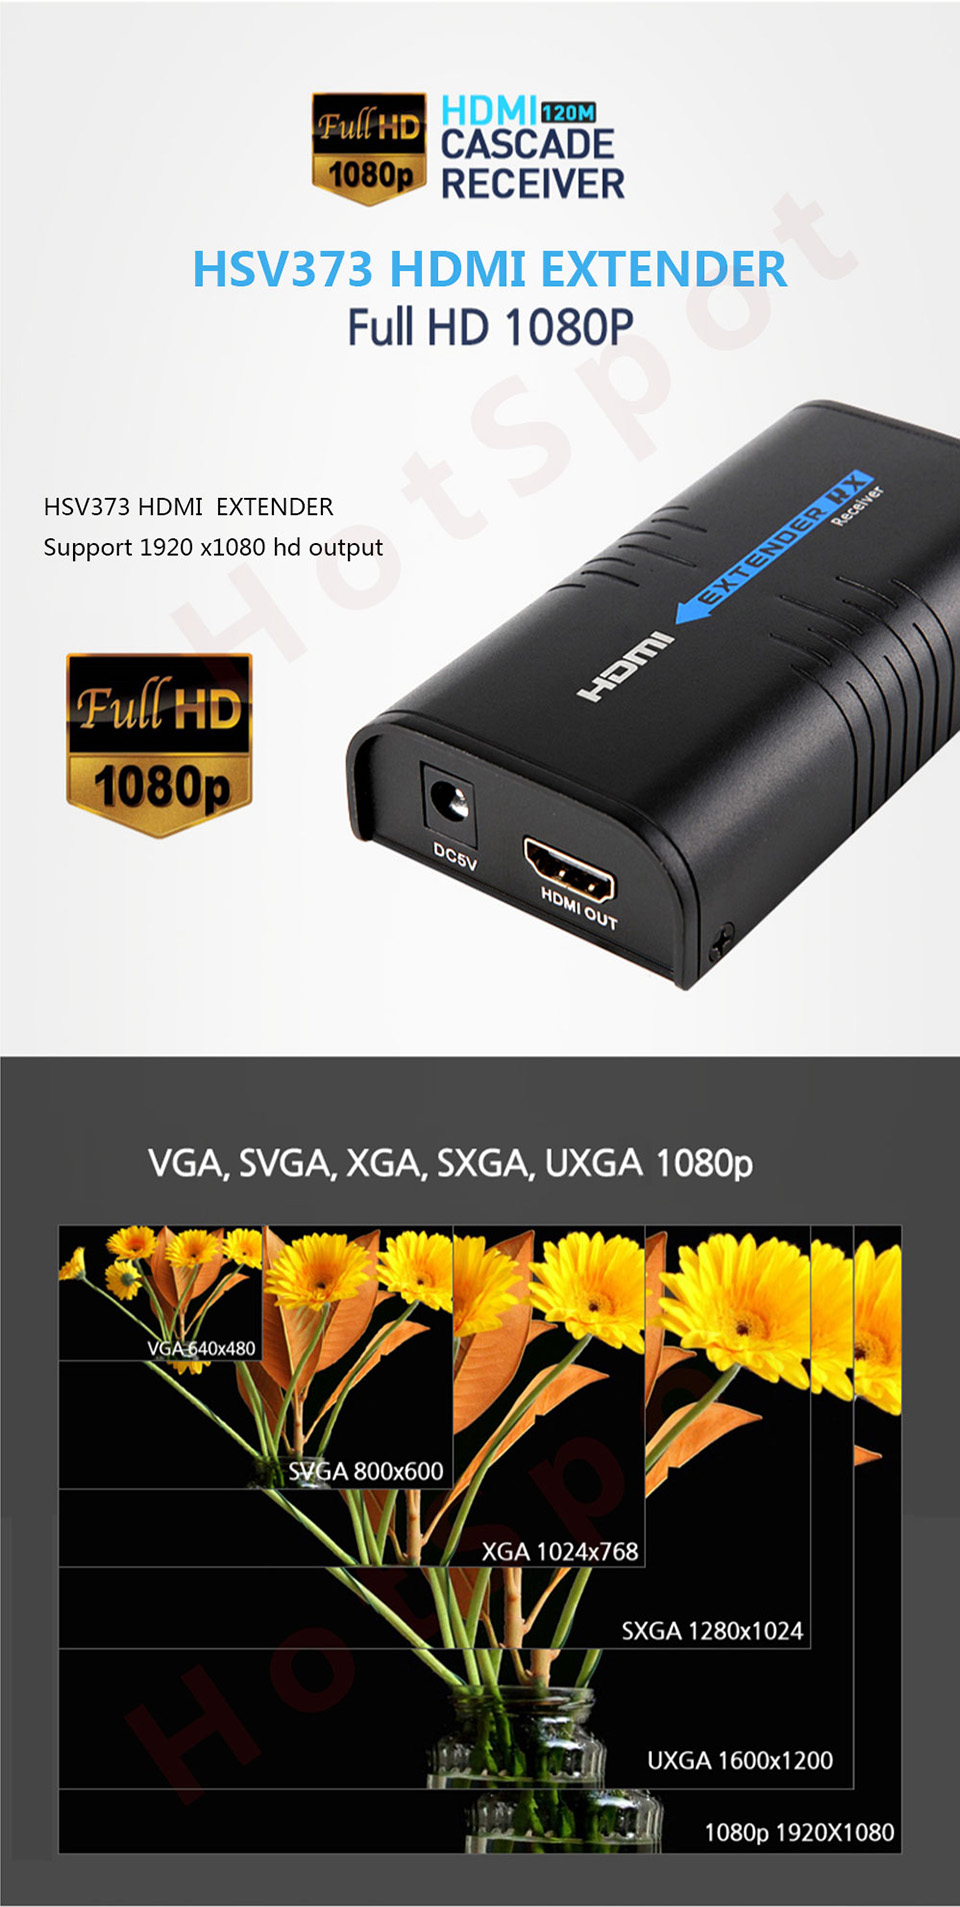 MiraBox HDMI Extender Transmitter and Receiver Over IP TCP UTP like HDMI splitter No Latency Lossless 1080P HDMI cat5 Extender (6)